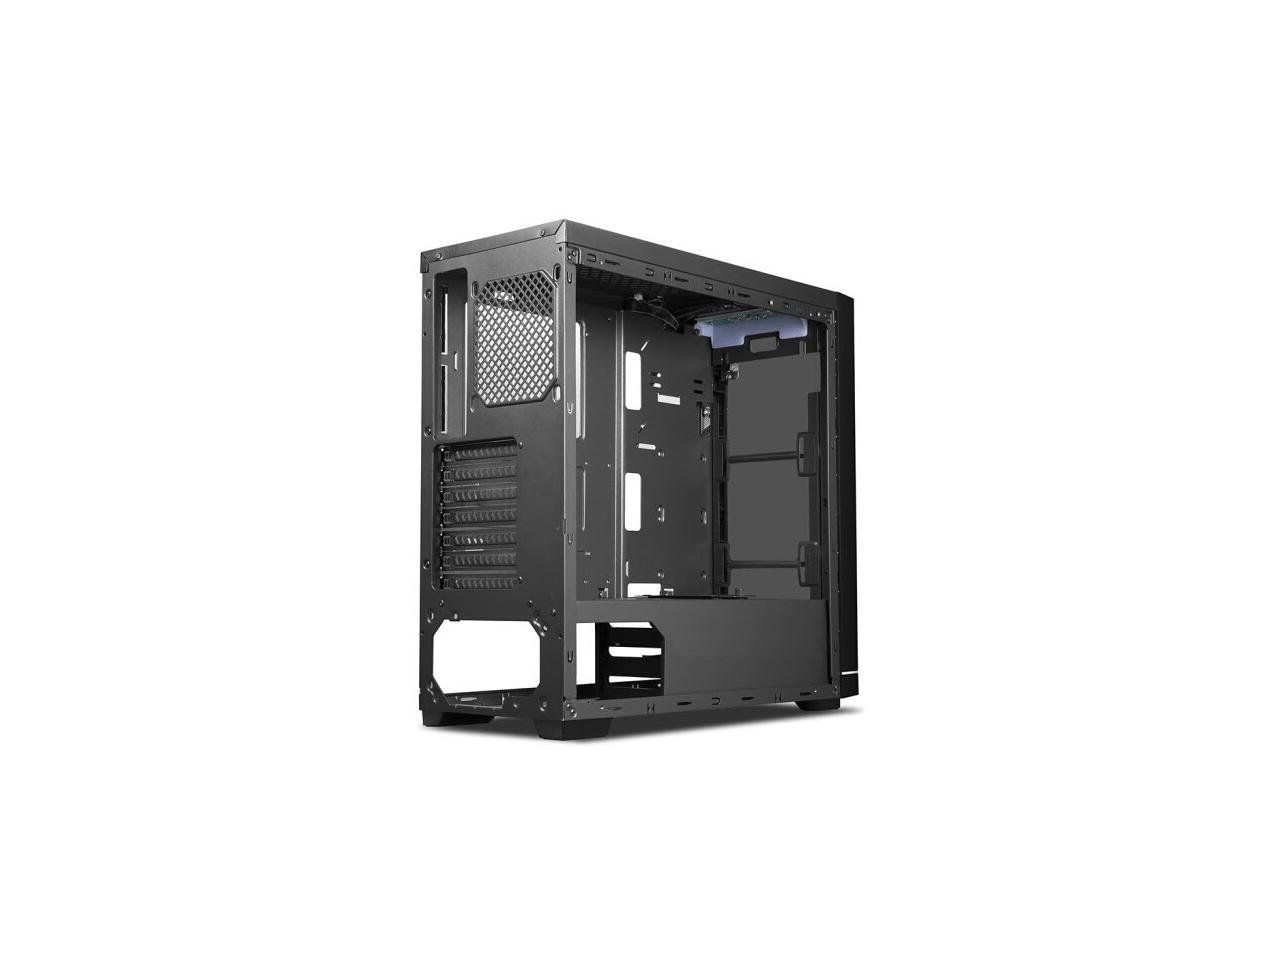 i7 CHALLENGER -- INTEL I7 9700K 8-CORE (3.6-4.9G), MSI Z390 MOTHERBOARD, 8GB DDR4 2666Mhz RAM, nVIDIA GTX 1660 6G DDR5 VIDEO CARD, 250G SSD, ATX GAMING CASE, COOLERMASTER 600W POWER SUPPLY